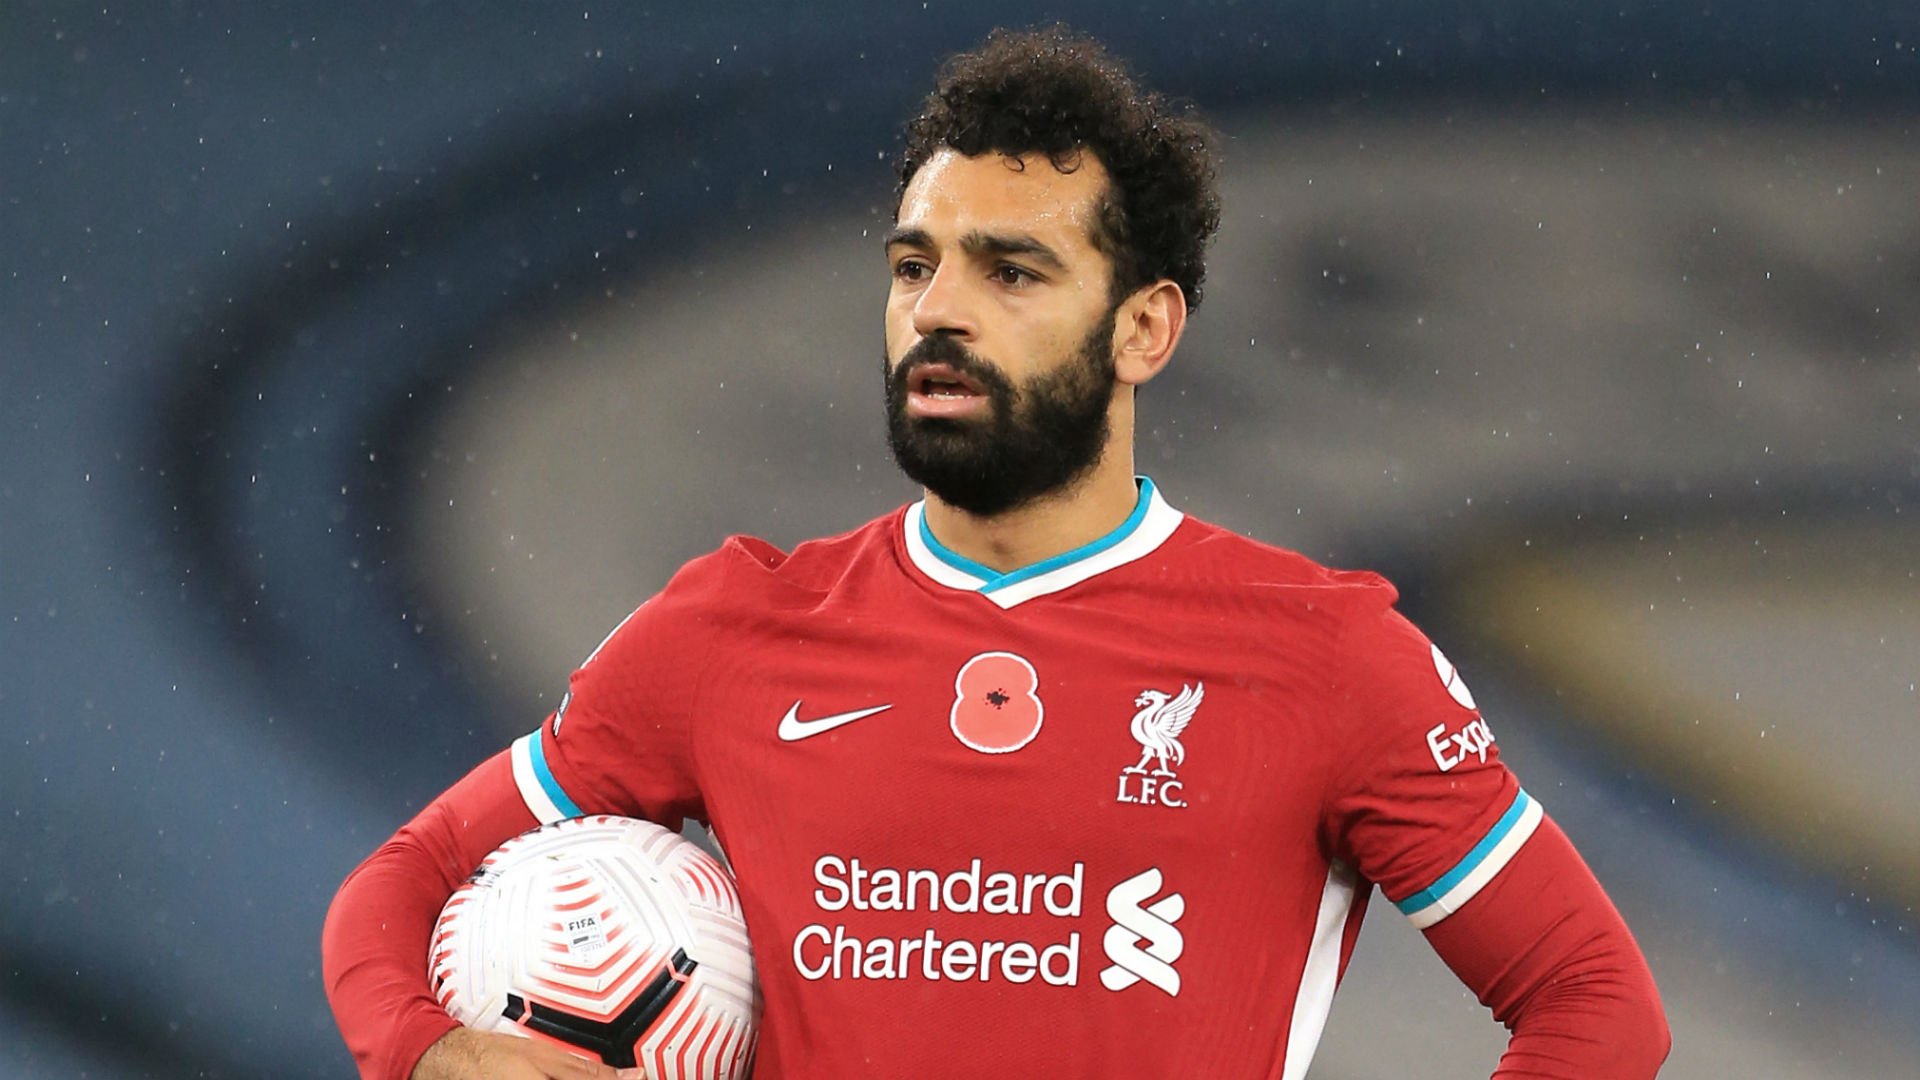 Salah: Real Madrid or Barcelona… who knows?